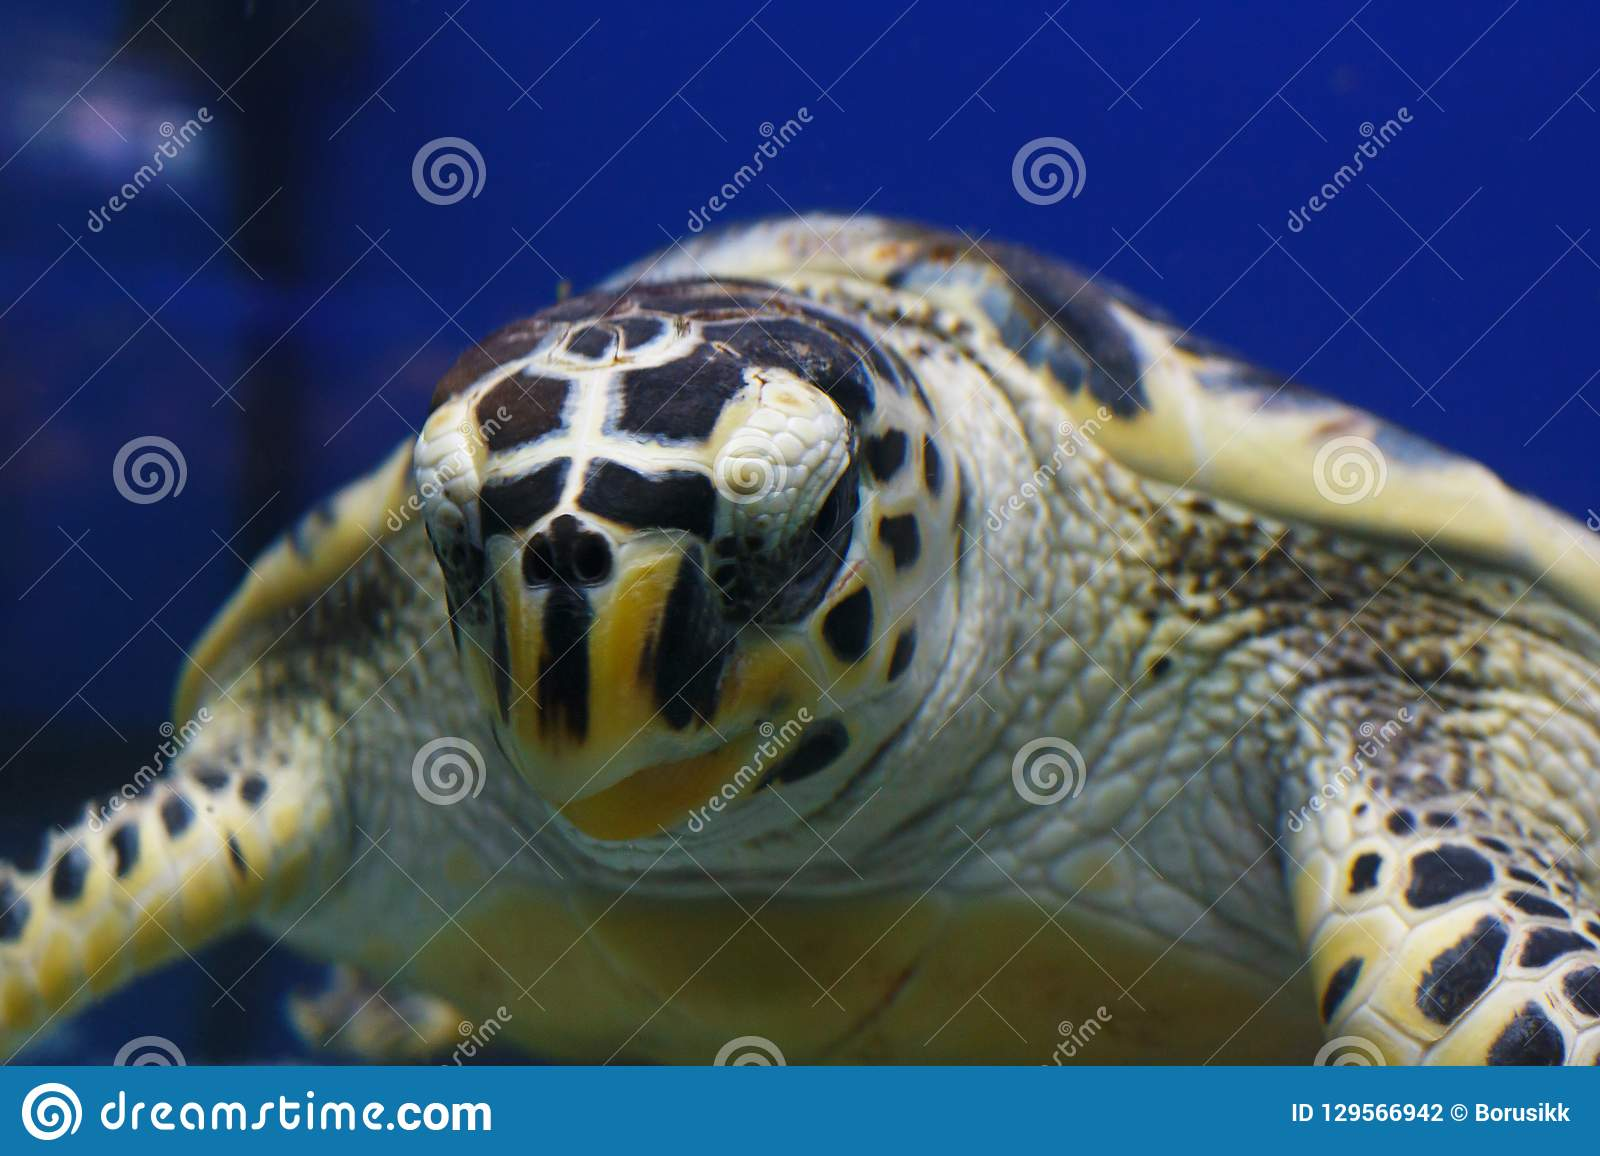 Hawksbill sea turtle Eretmochelys imbricata, also known as Bissa in their habitat